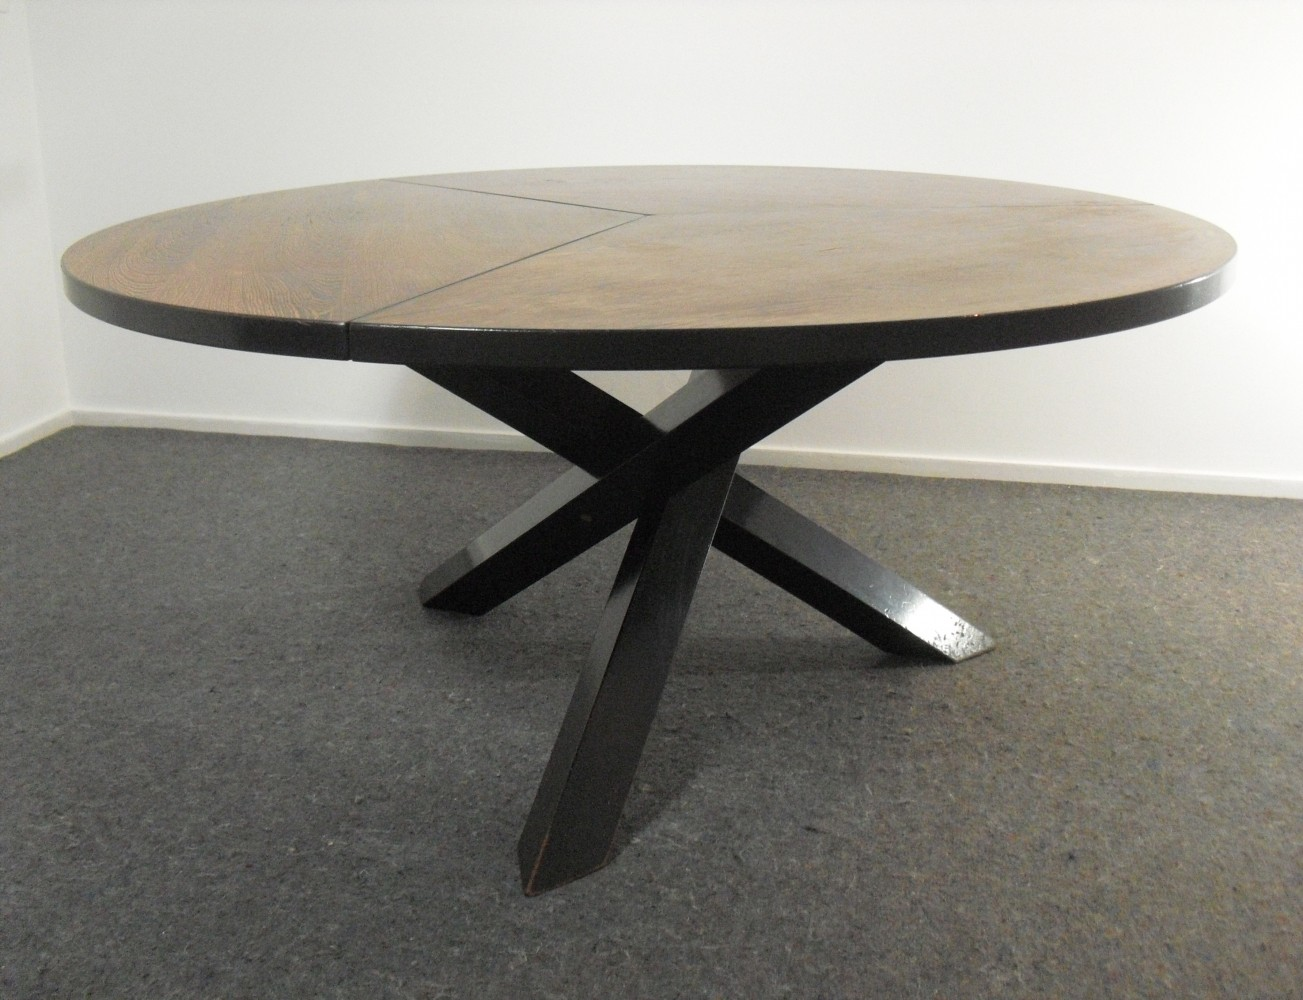 Dining table by Martin Visser for Spectrum, 1960s